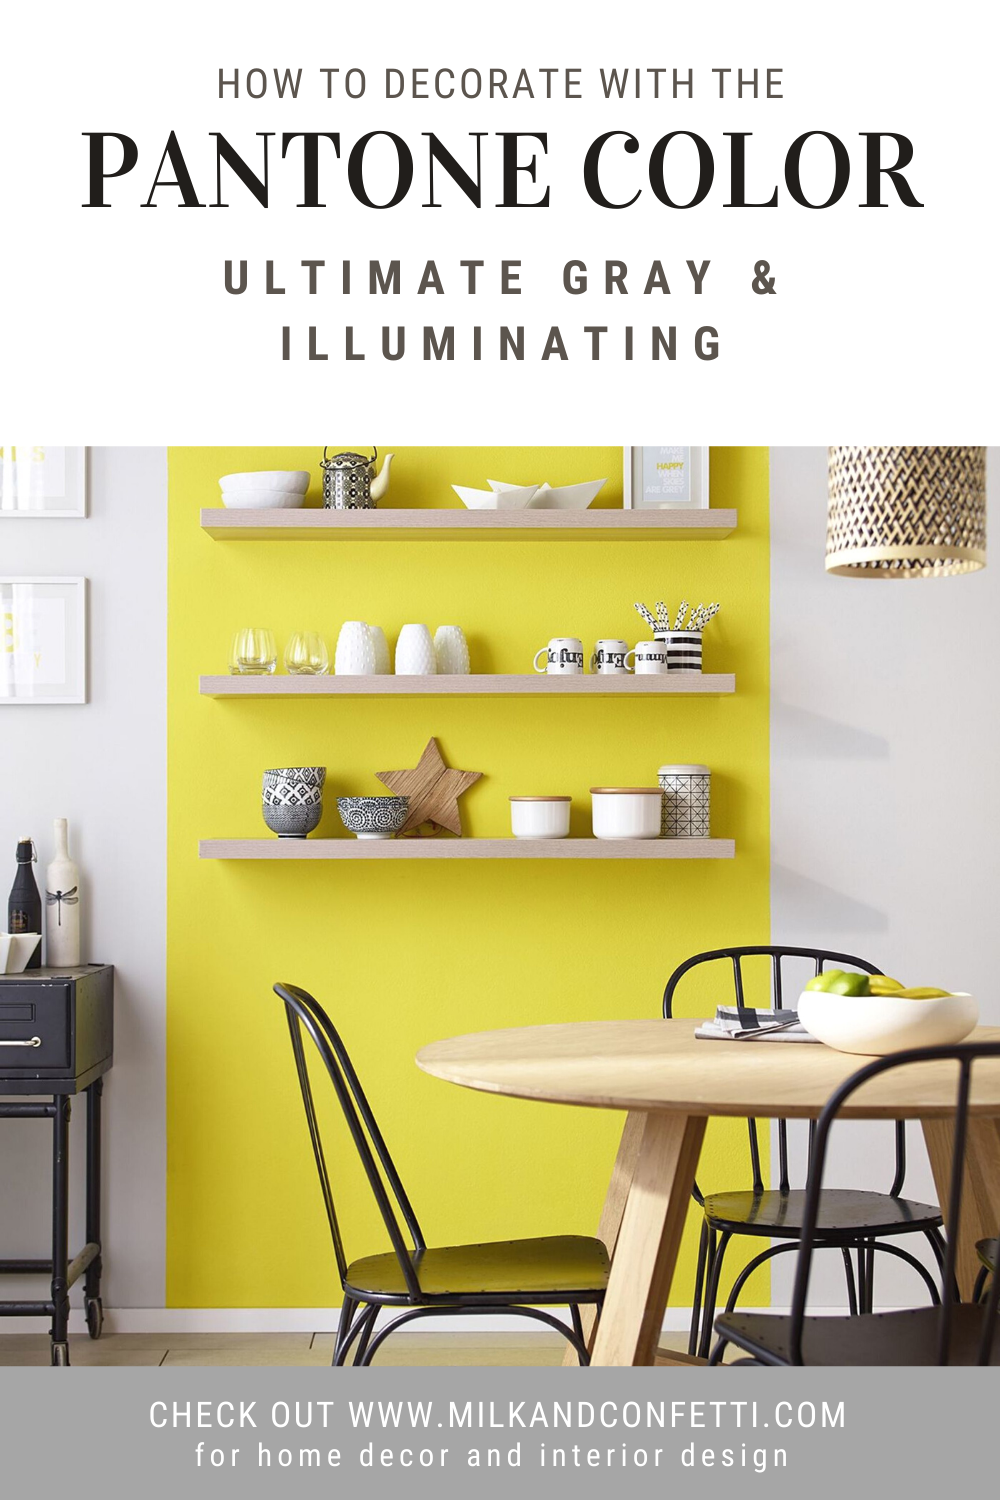 Pantone color(s) of the year 2021 has been revealed: PANTONE 17-5104 Ultimate Gray and PANTONE 13-0647 Illuminating.